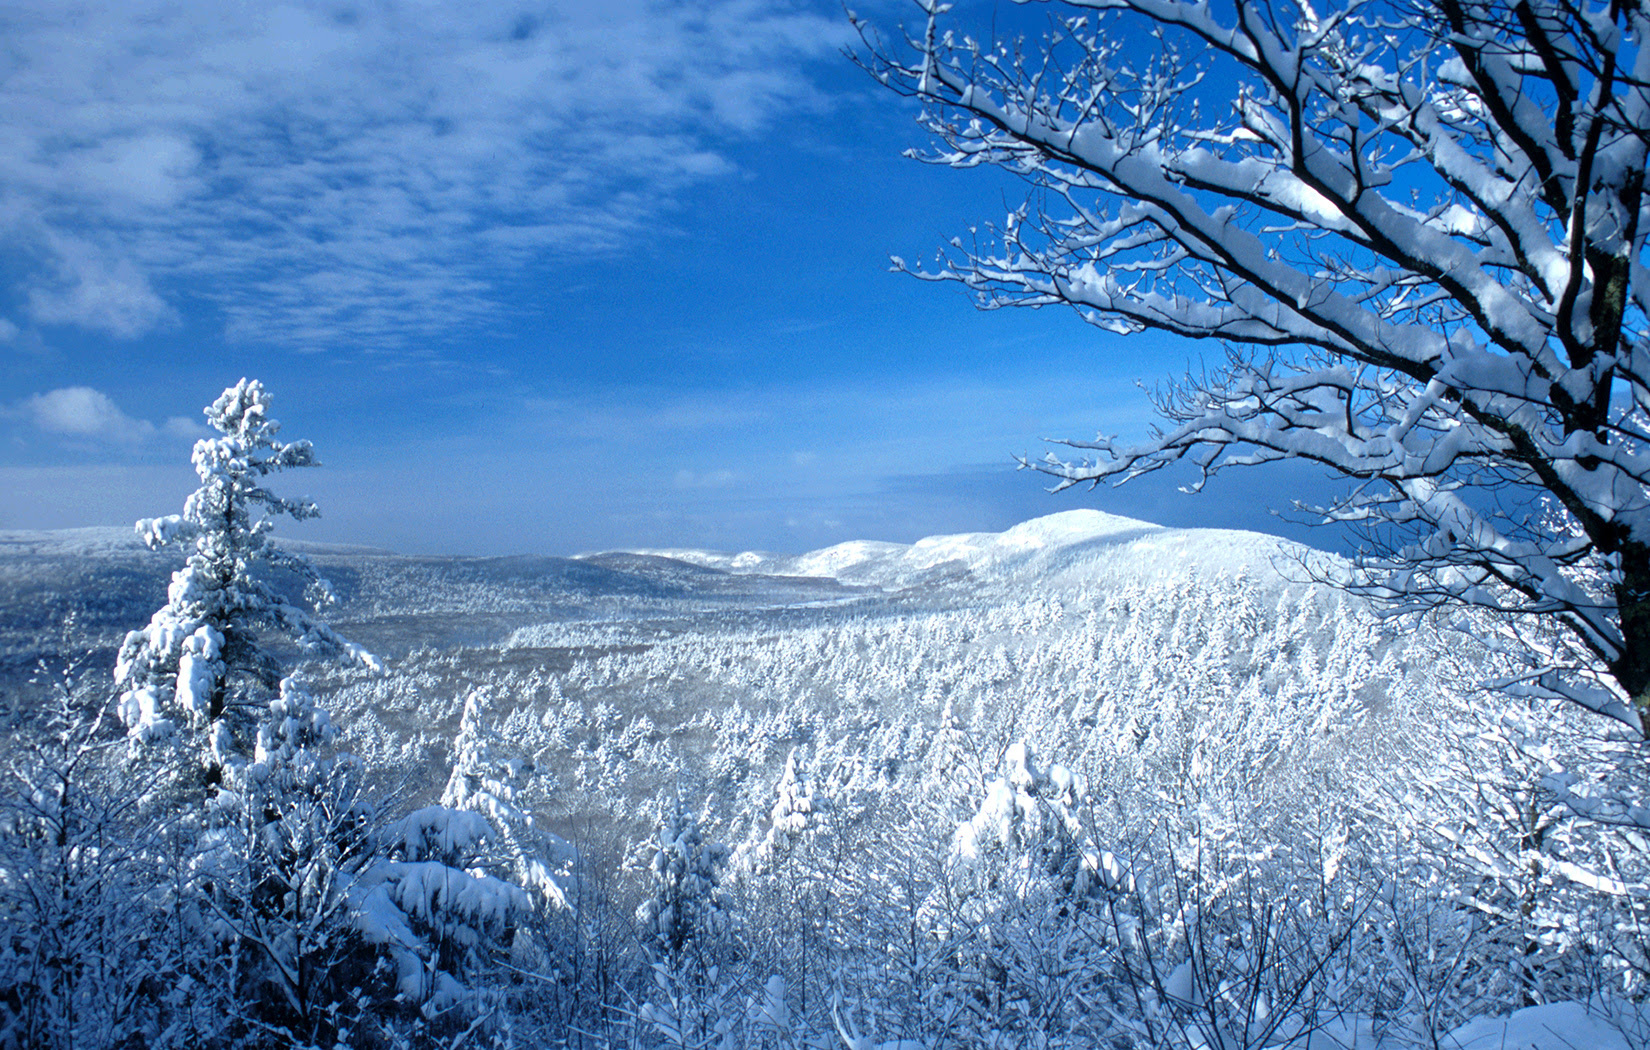 A stunning winter photo shows the spectacular beauty of Porcupine Mountains Wilderness State Park.